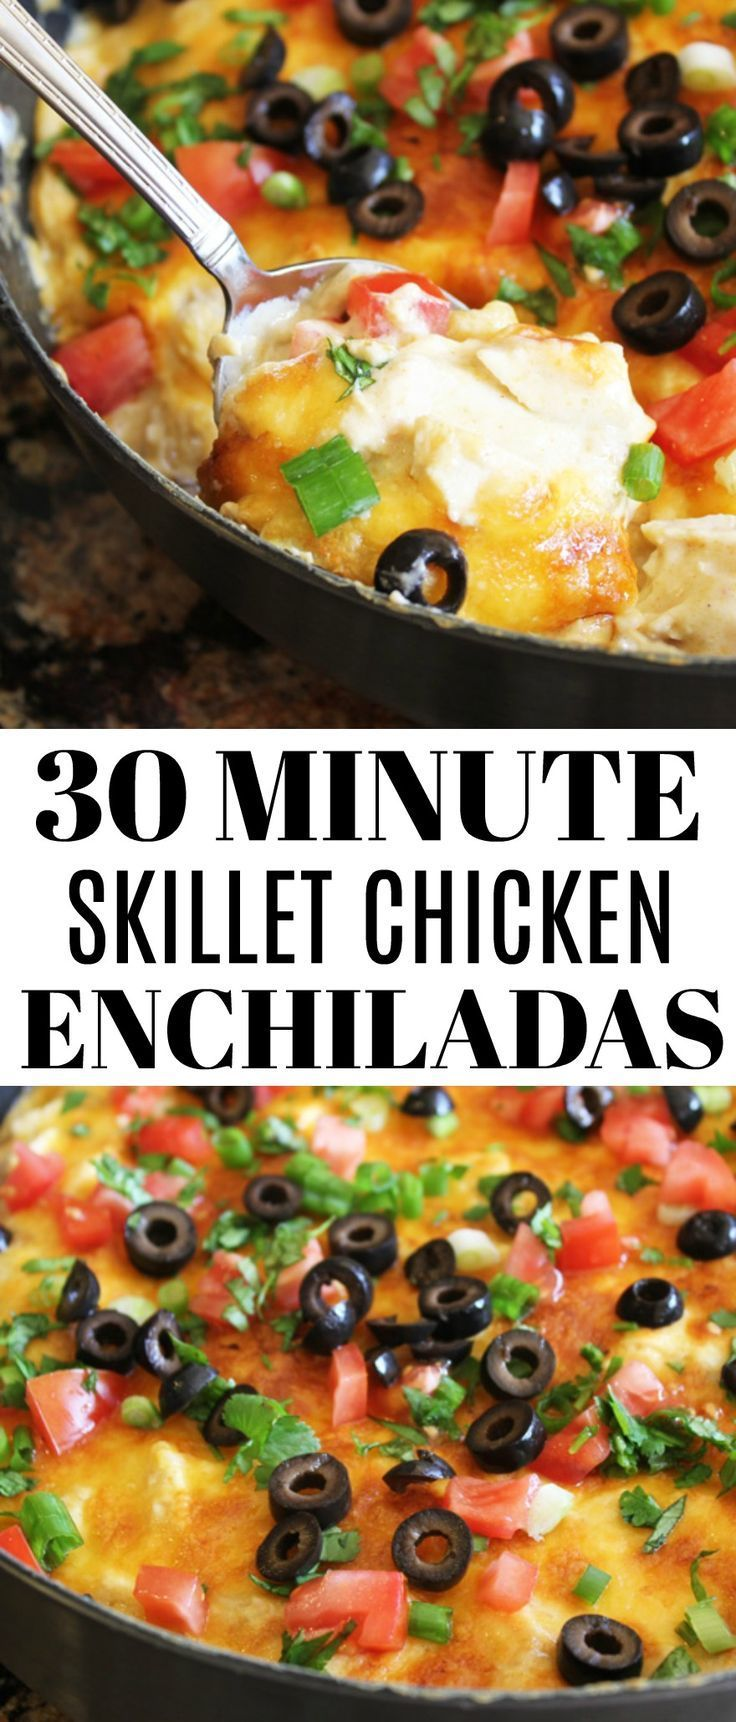 30 Minute Skillet Chicken Enchiladas images